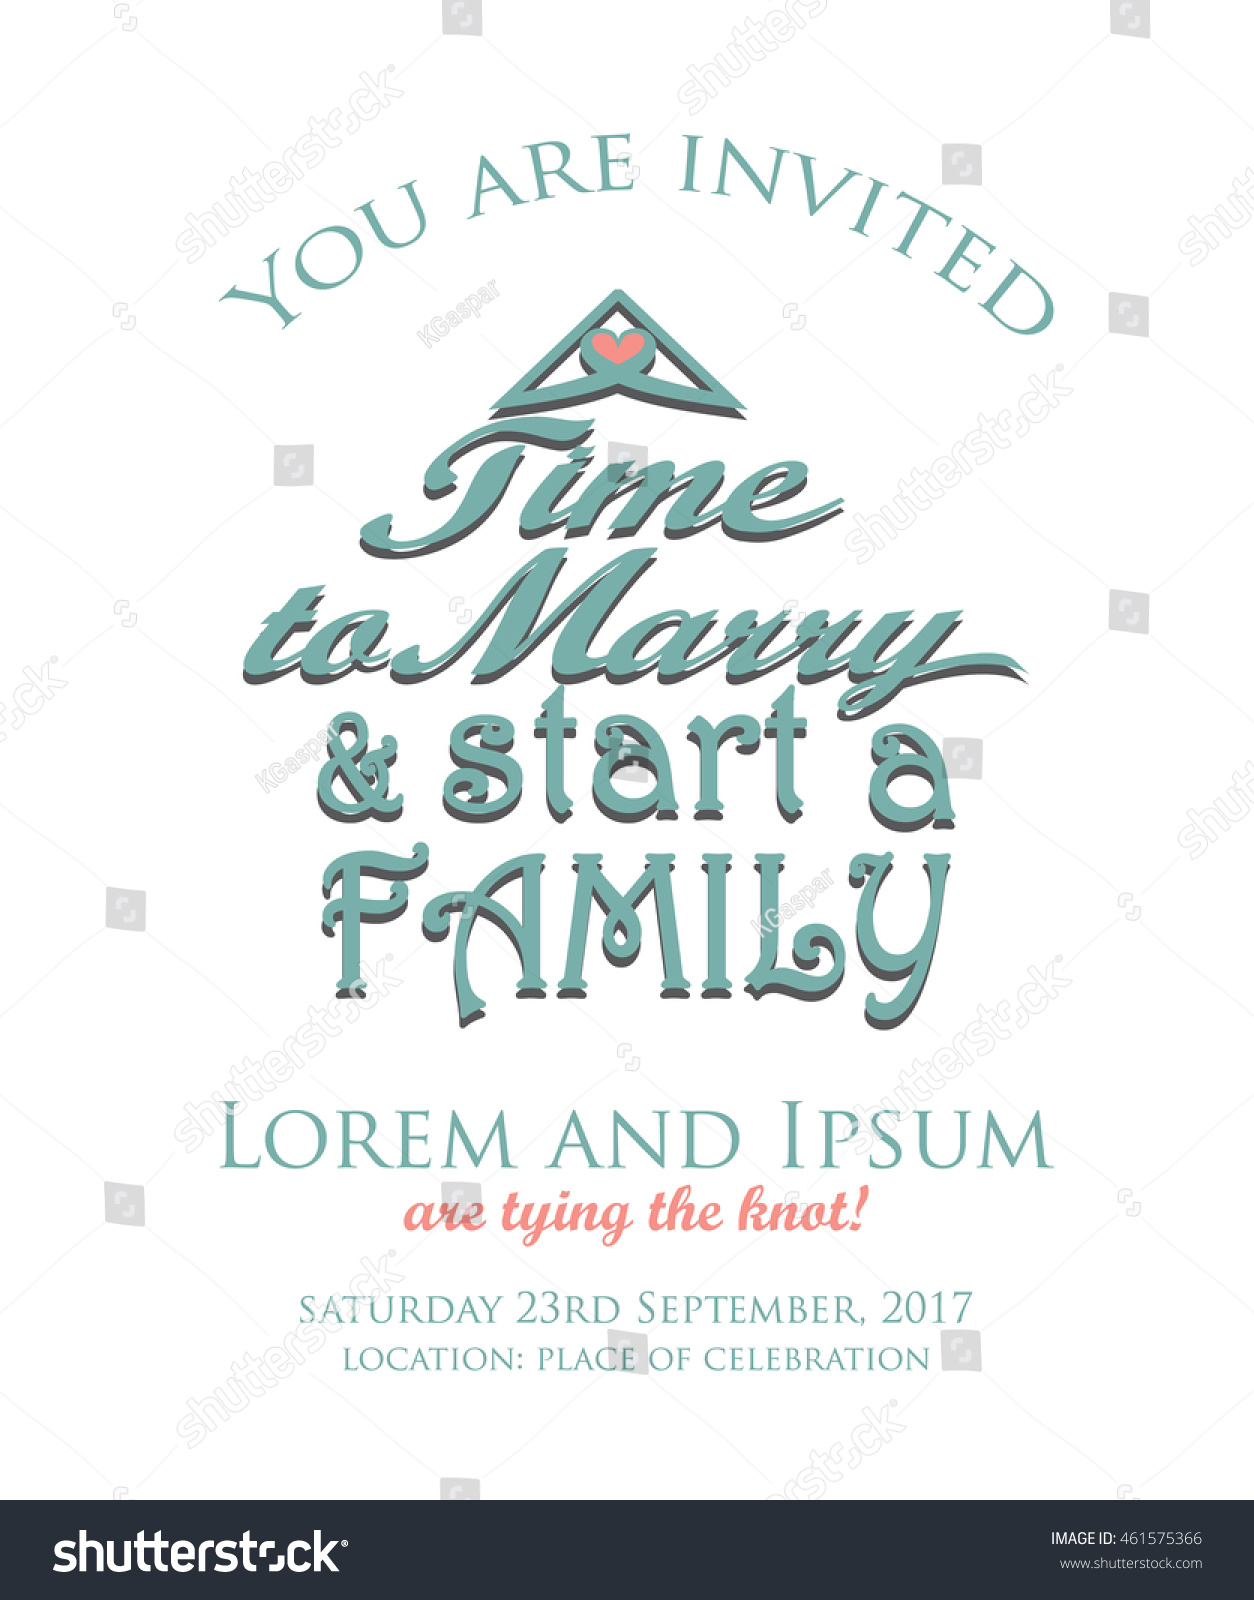 Cute wedding invitation design quote shape stock vector 461575366 cute wedding invitation design with quote in the shape of a house stopboris Images